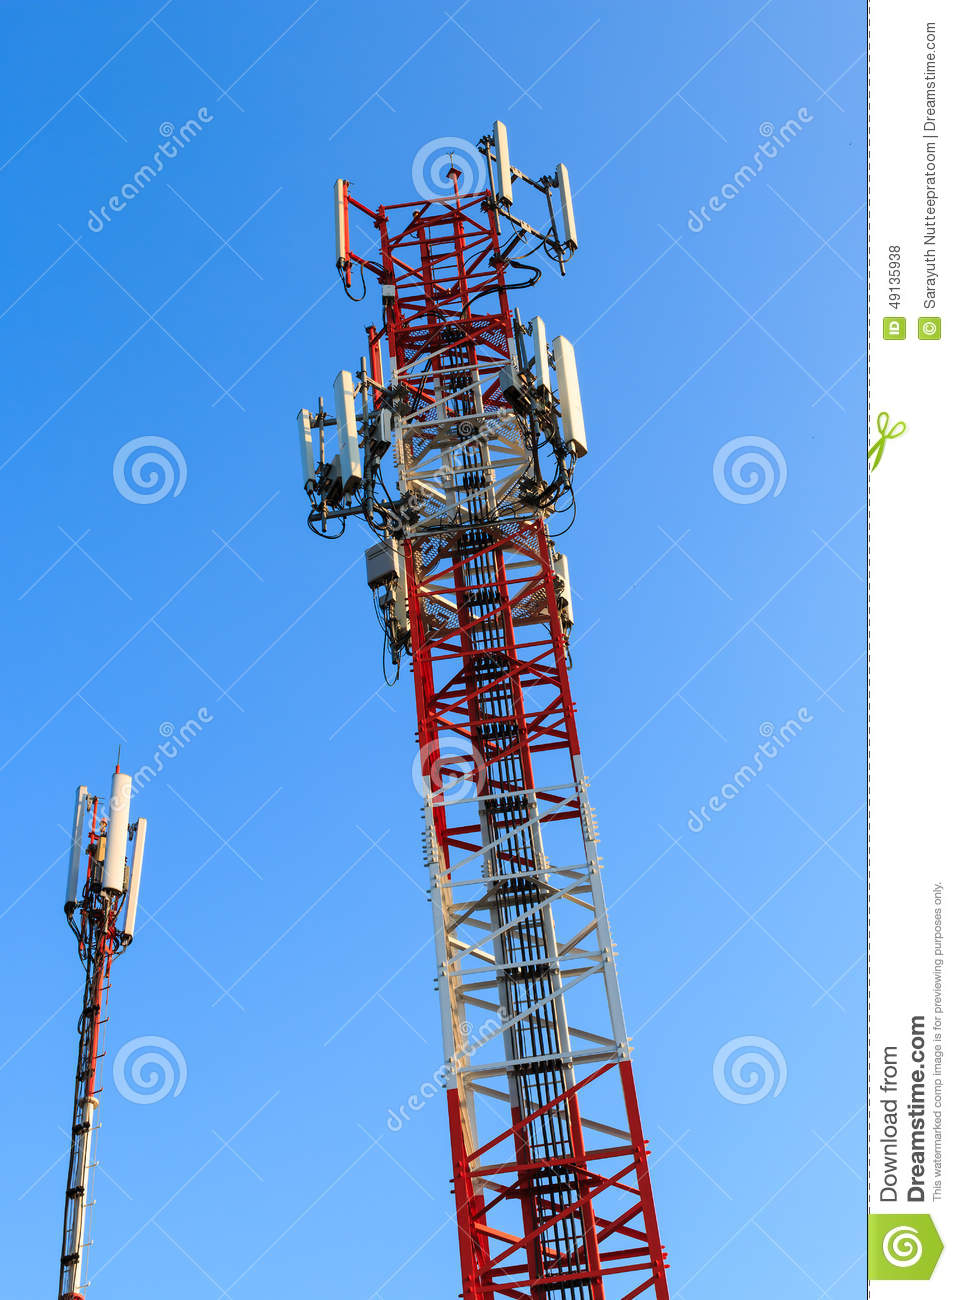 Radio communications towers